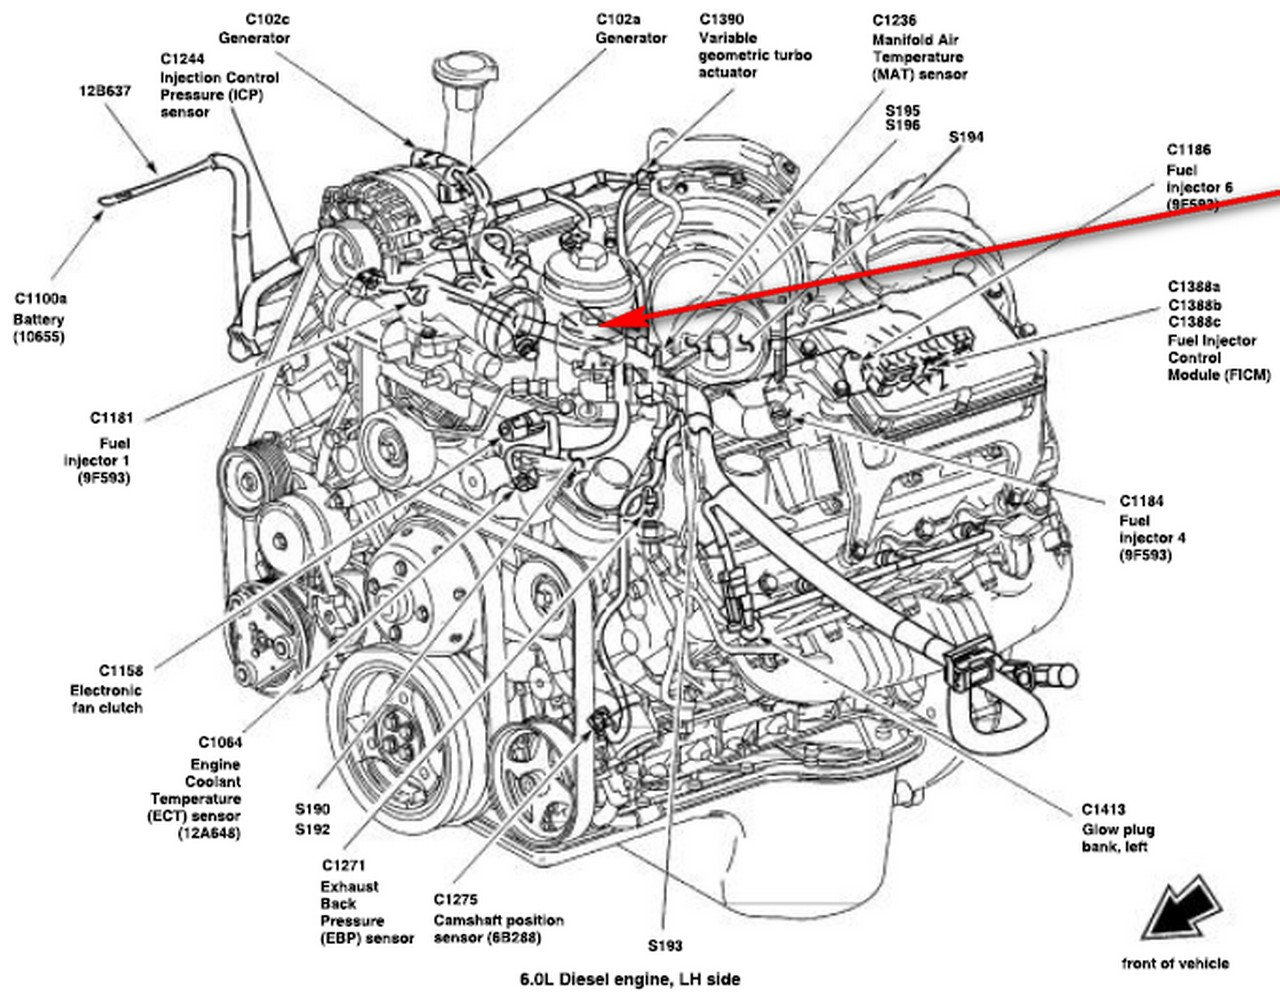 where can i get a diagram of the fuel filter housing